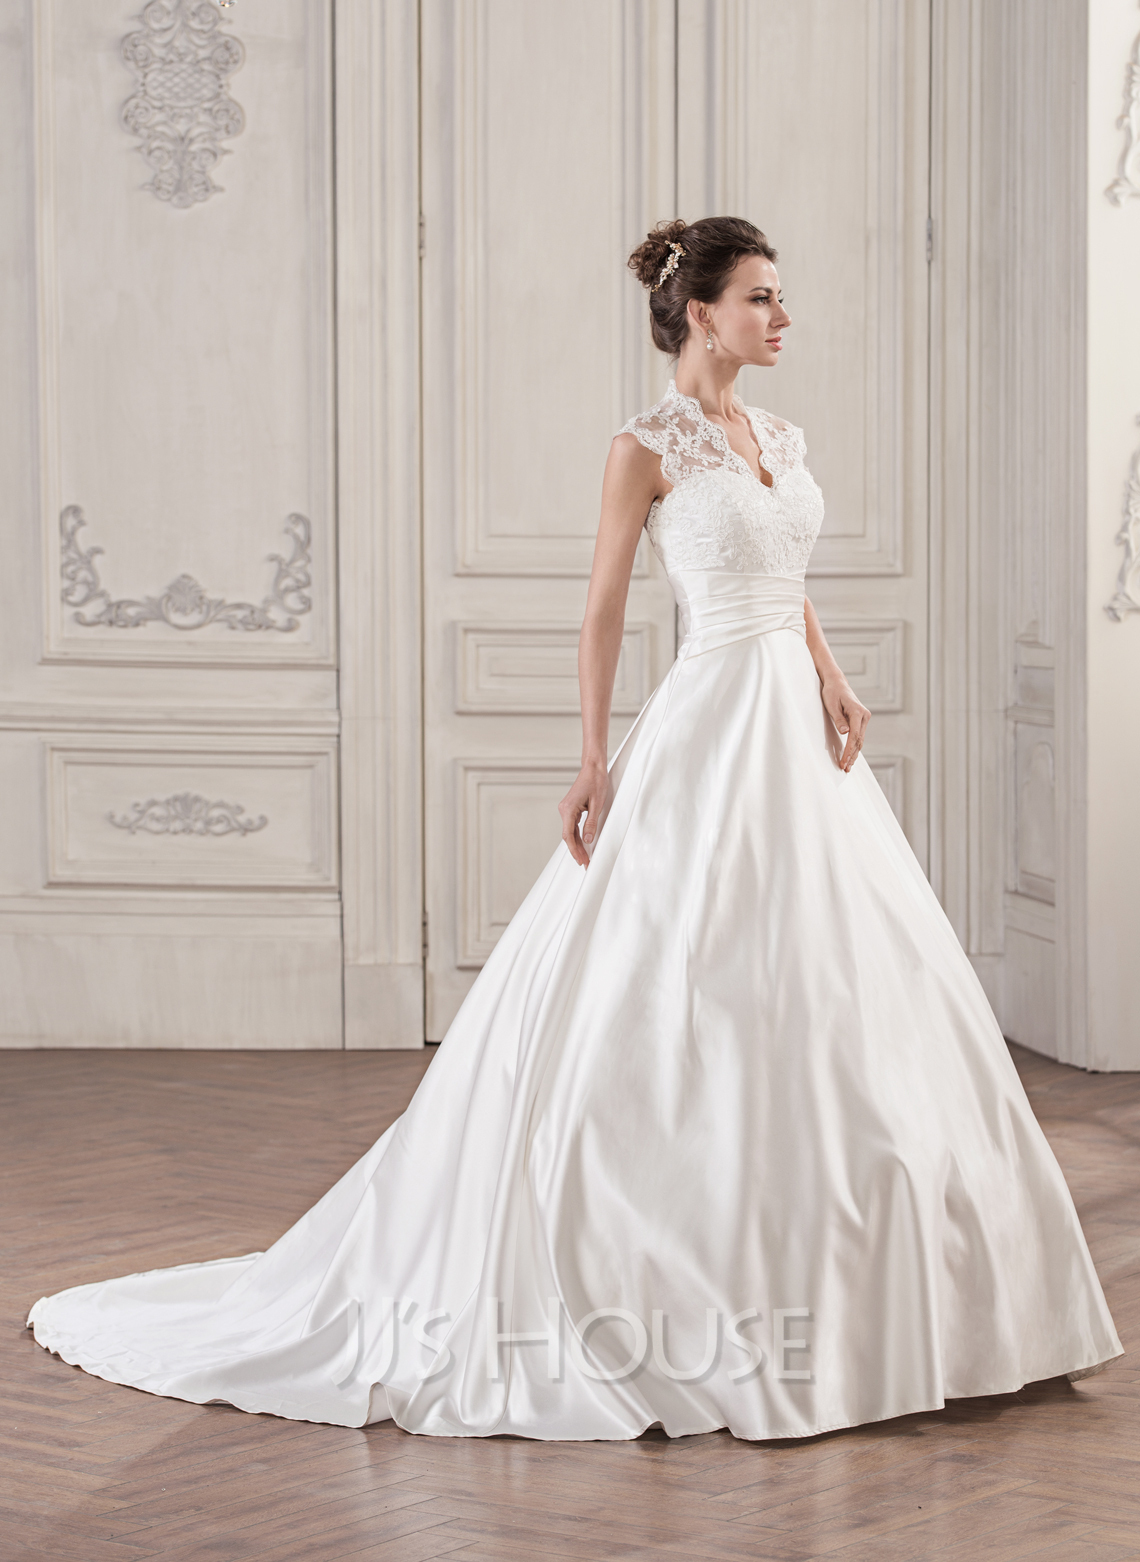 06b865c88f66 Ball-Gown V-neck Court Train Satin Lace Wedding Dress With Ruffle. Loading  zoom